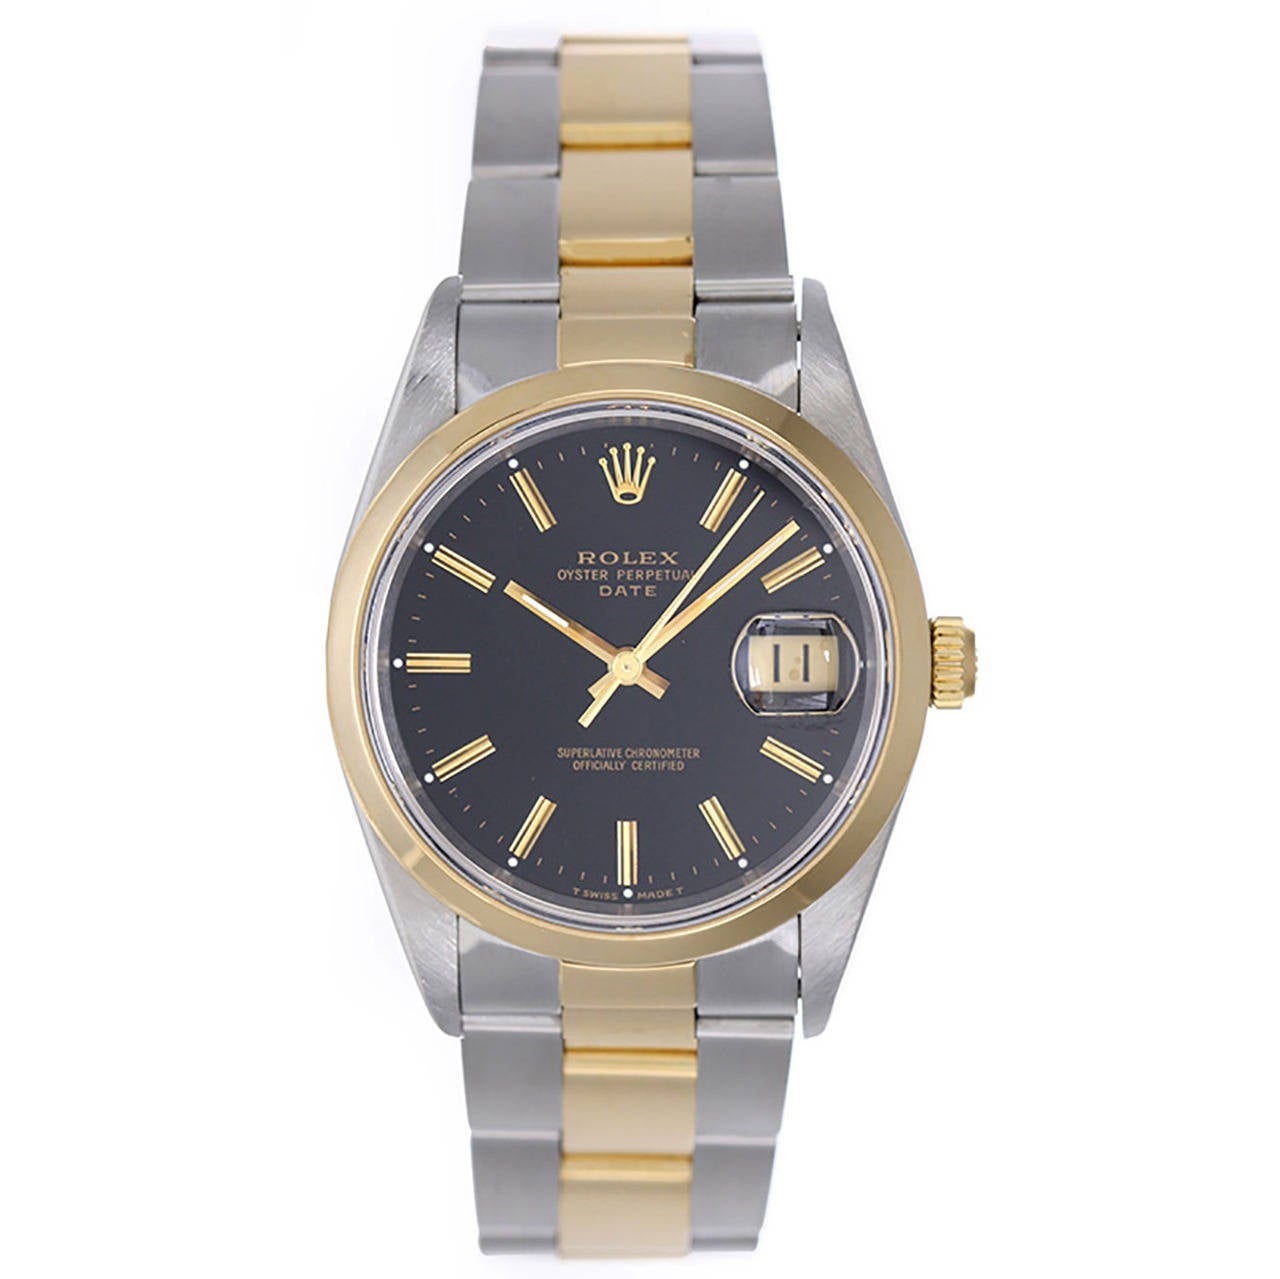 Rolex Yellow Gold Stainless Steel Black Dial Date Automatic Wristwatch Ref 15203